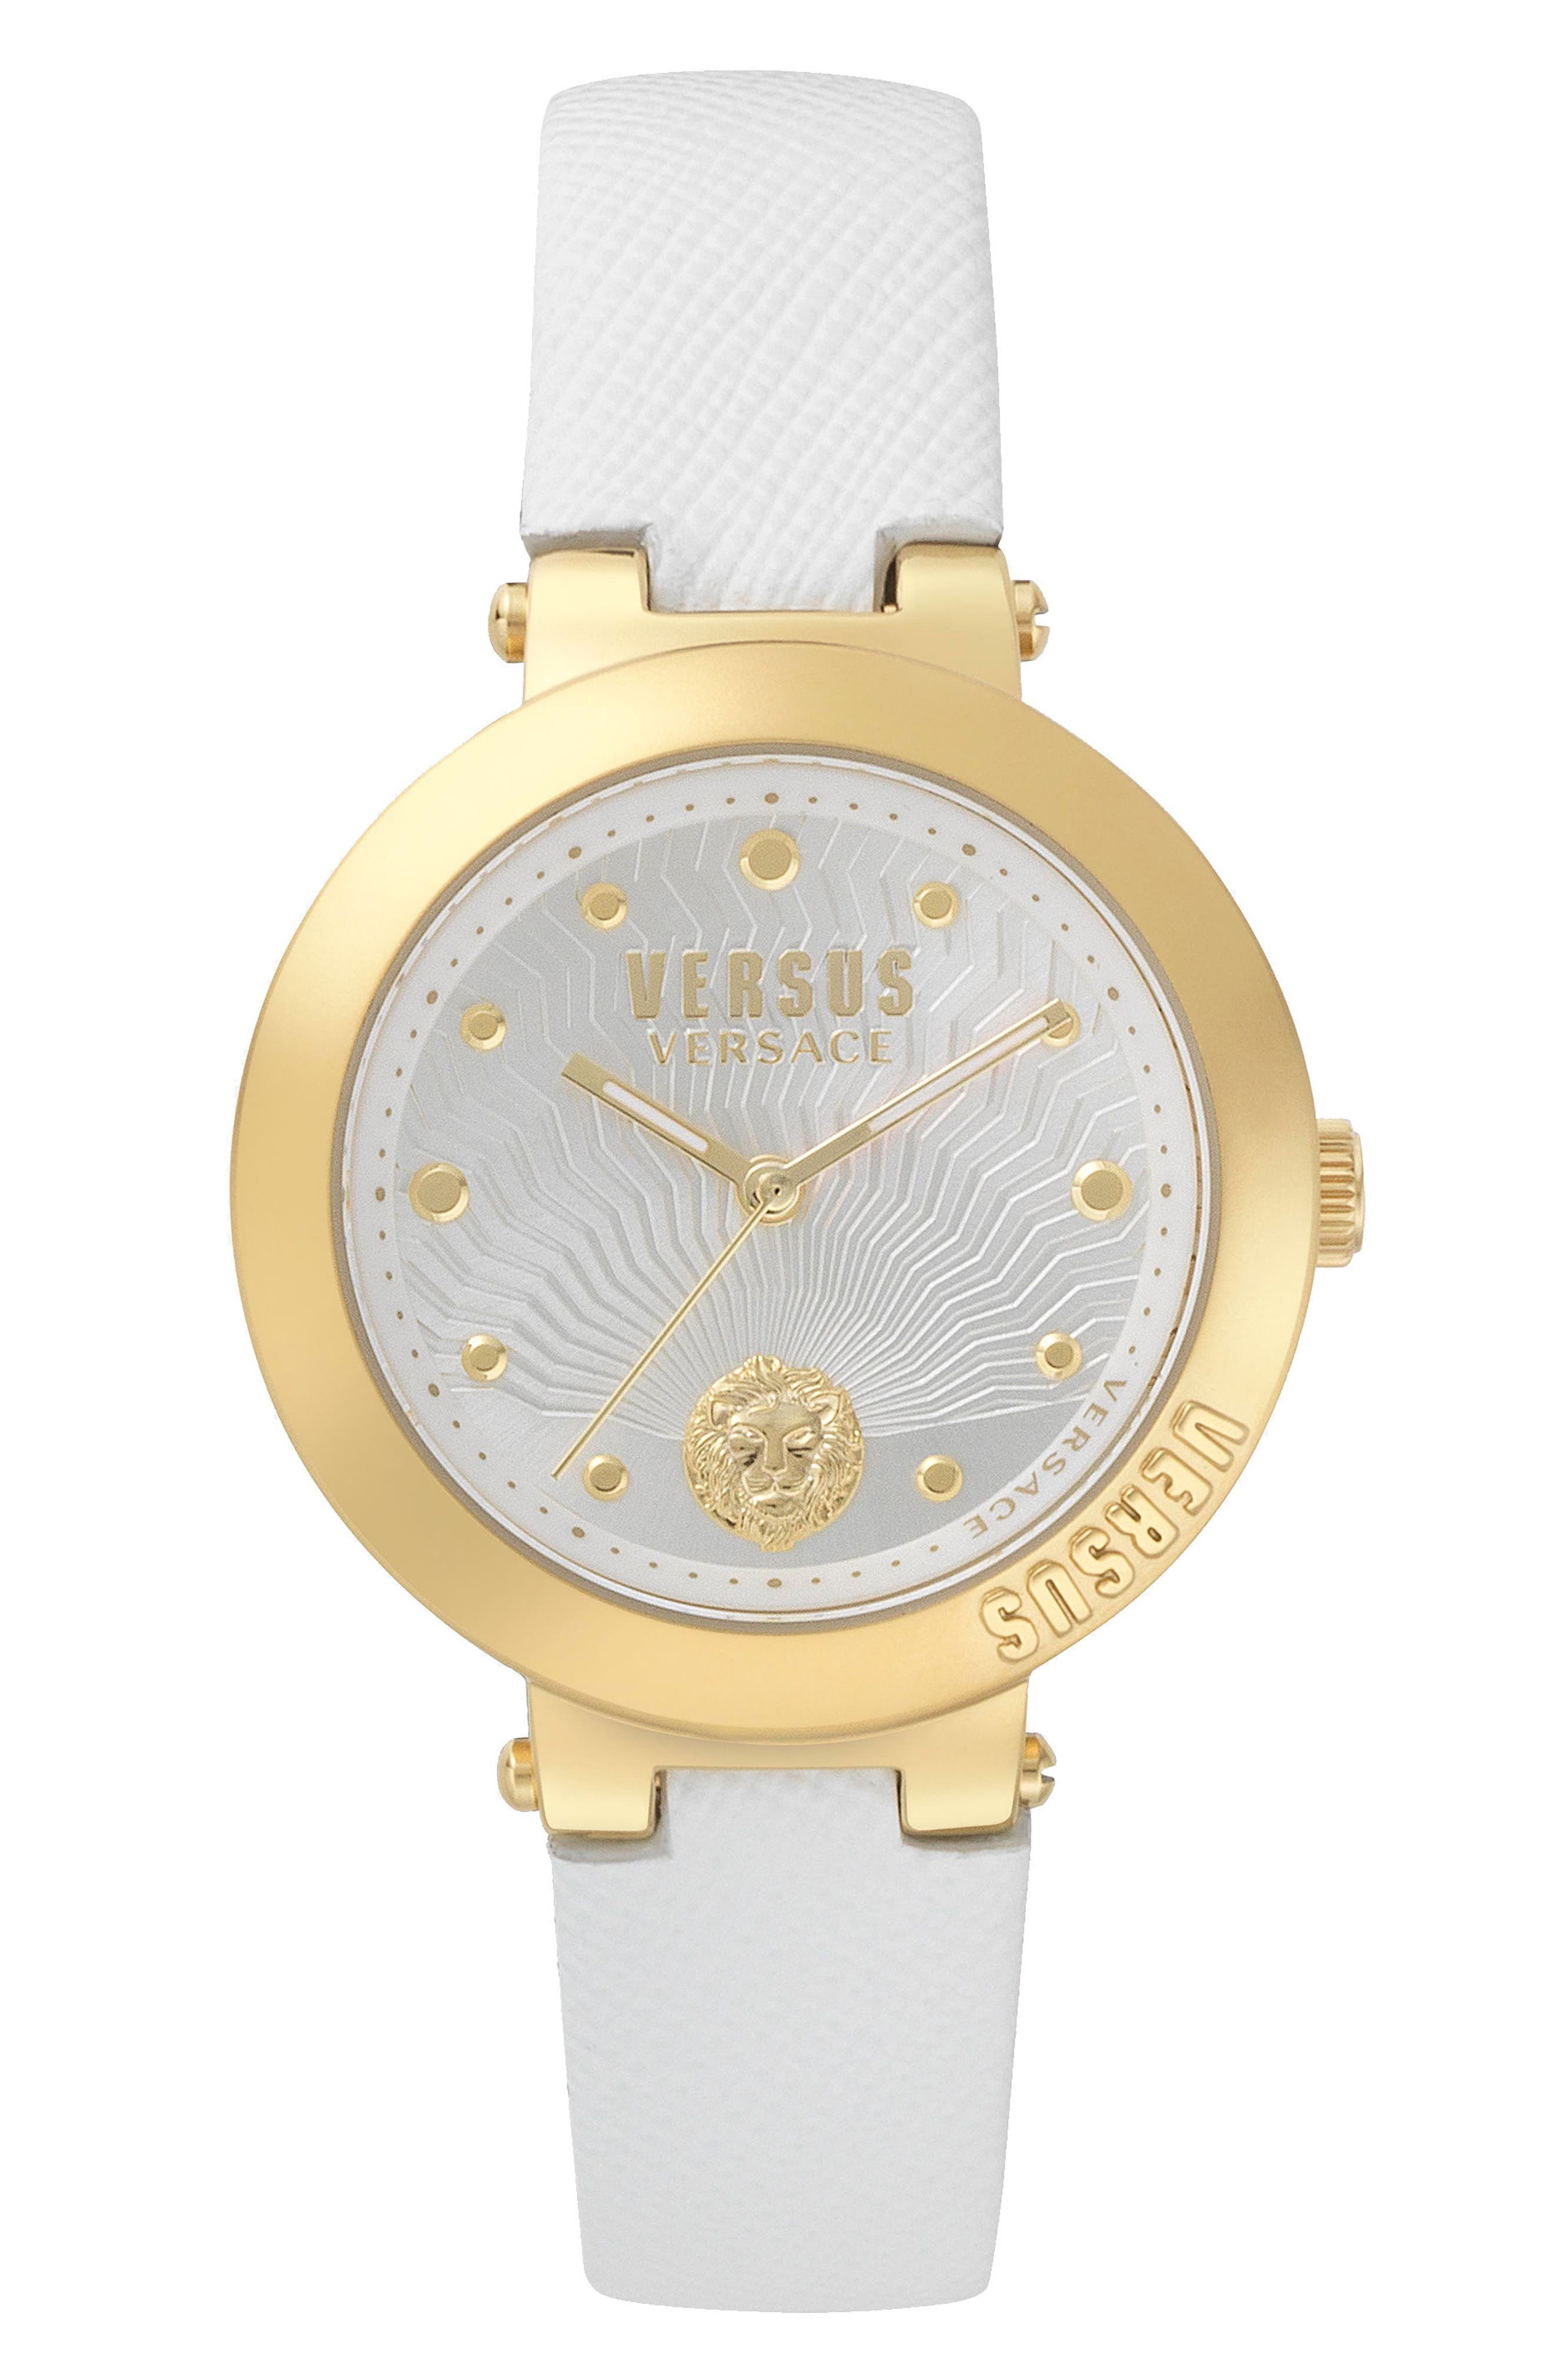 Main Image - VERSUS by Versace Lantau Island Leather Strap Watch, 36mm